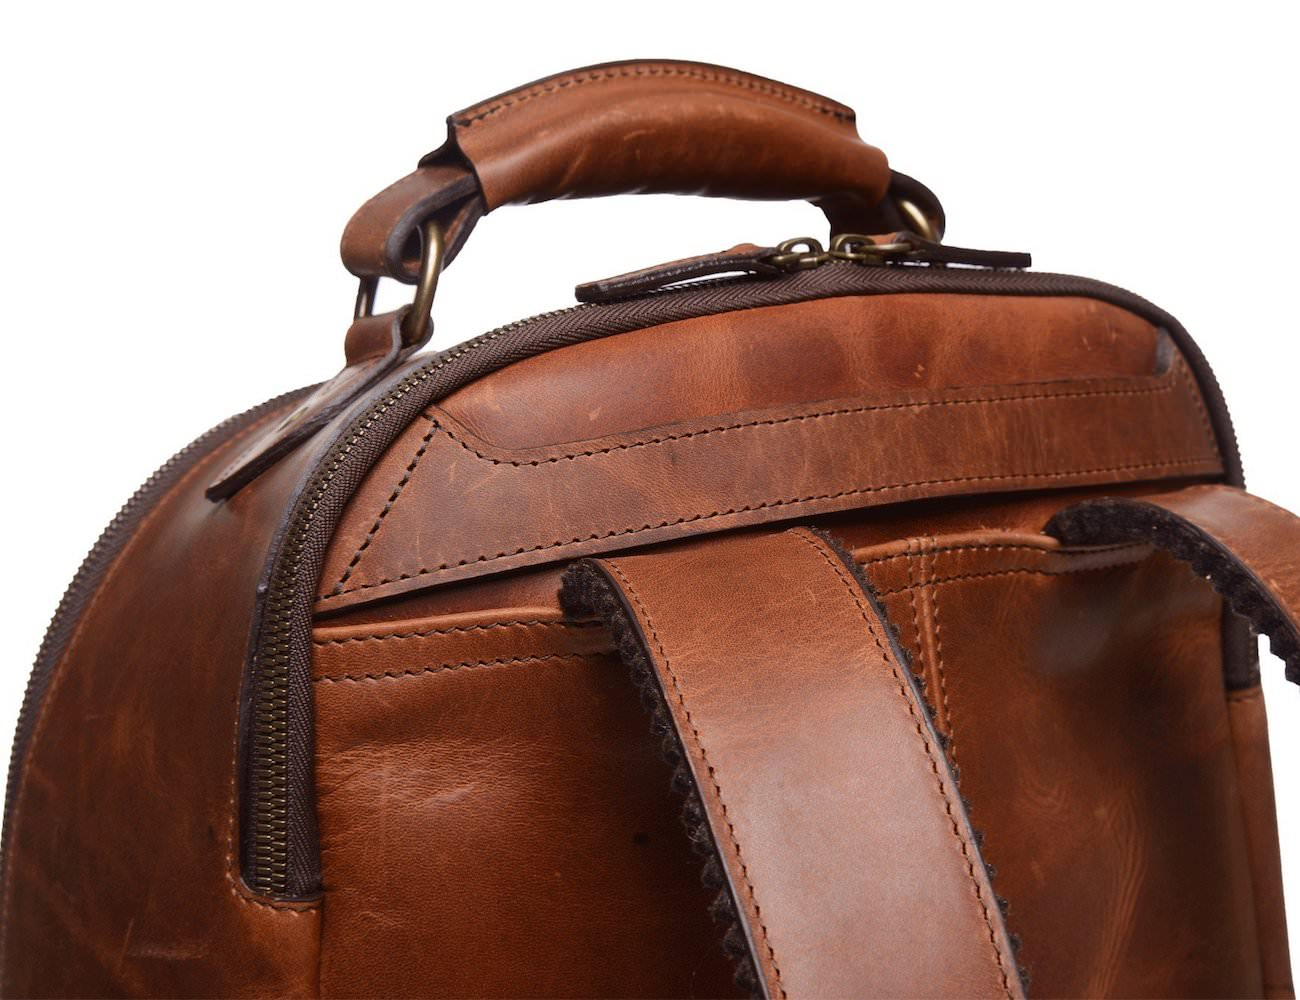 Lewis Classic Leather Luxury Backpack by Korchmar